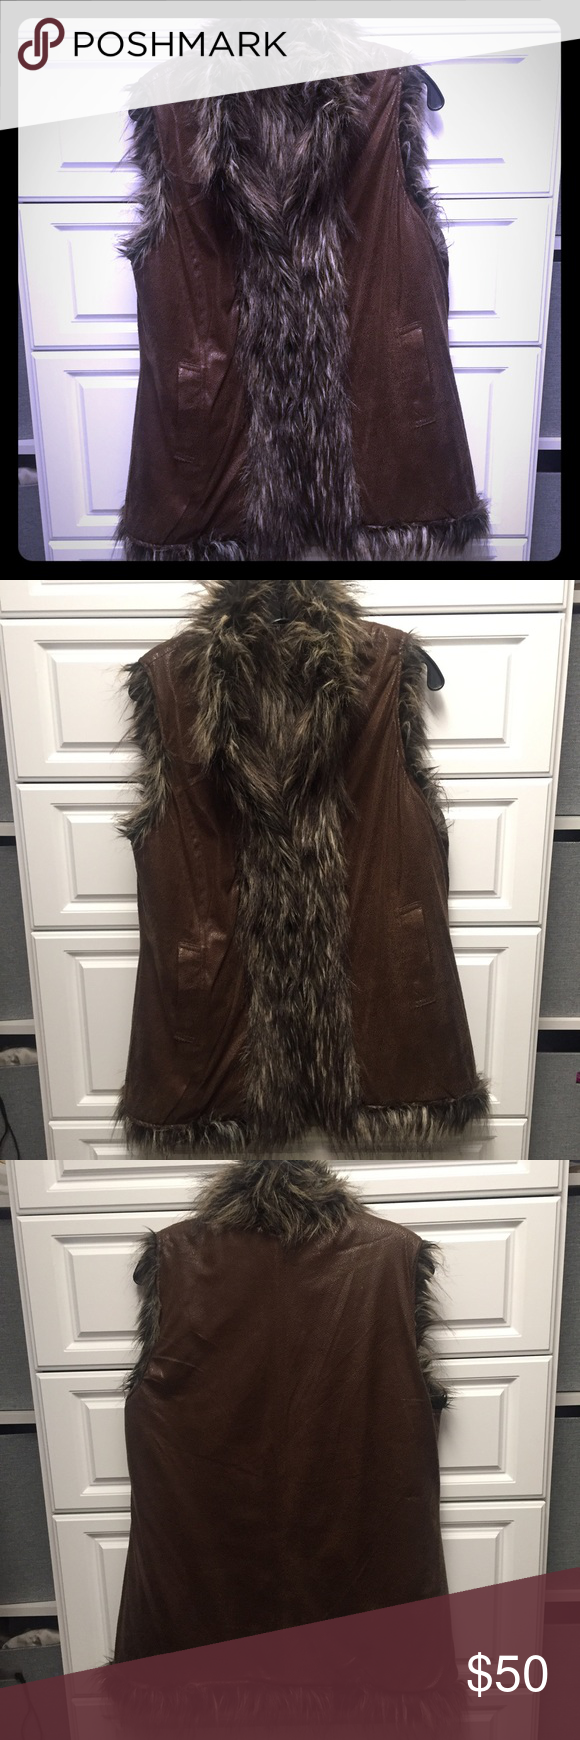 Reversible Faux Fur and Suede Vest Faux suede with faux fur trim, or reverse to all faux fur. Pockets on both sides. Longer length - comes down to hips. Kial Jackets & Coats Vests